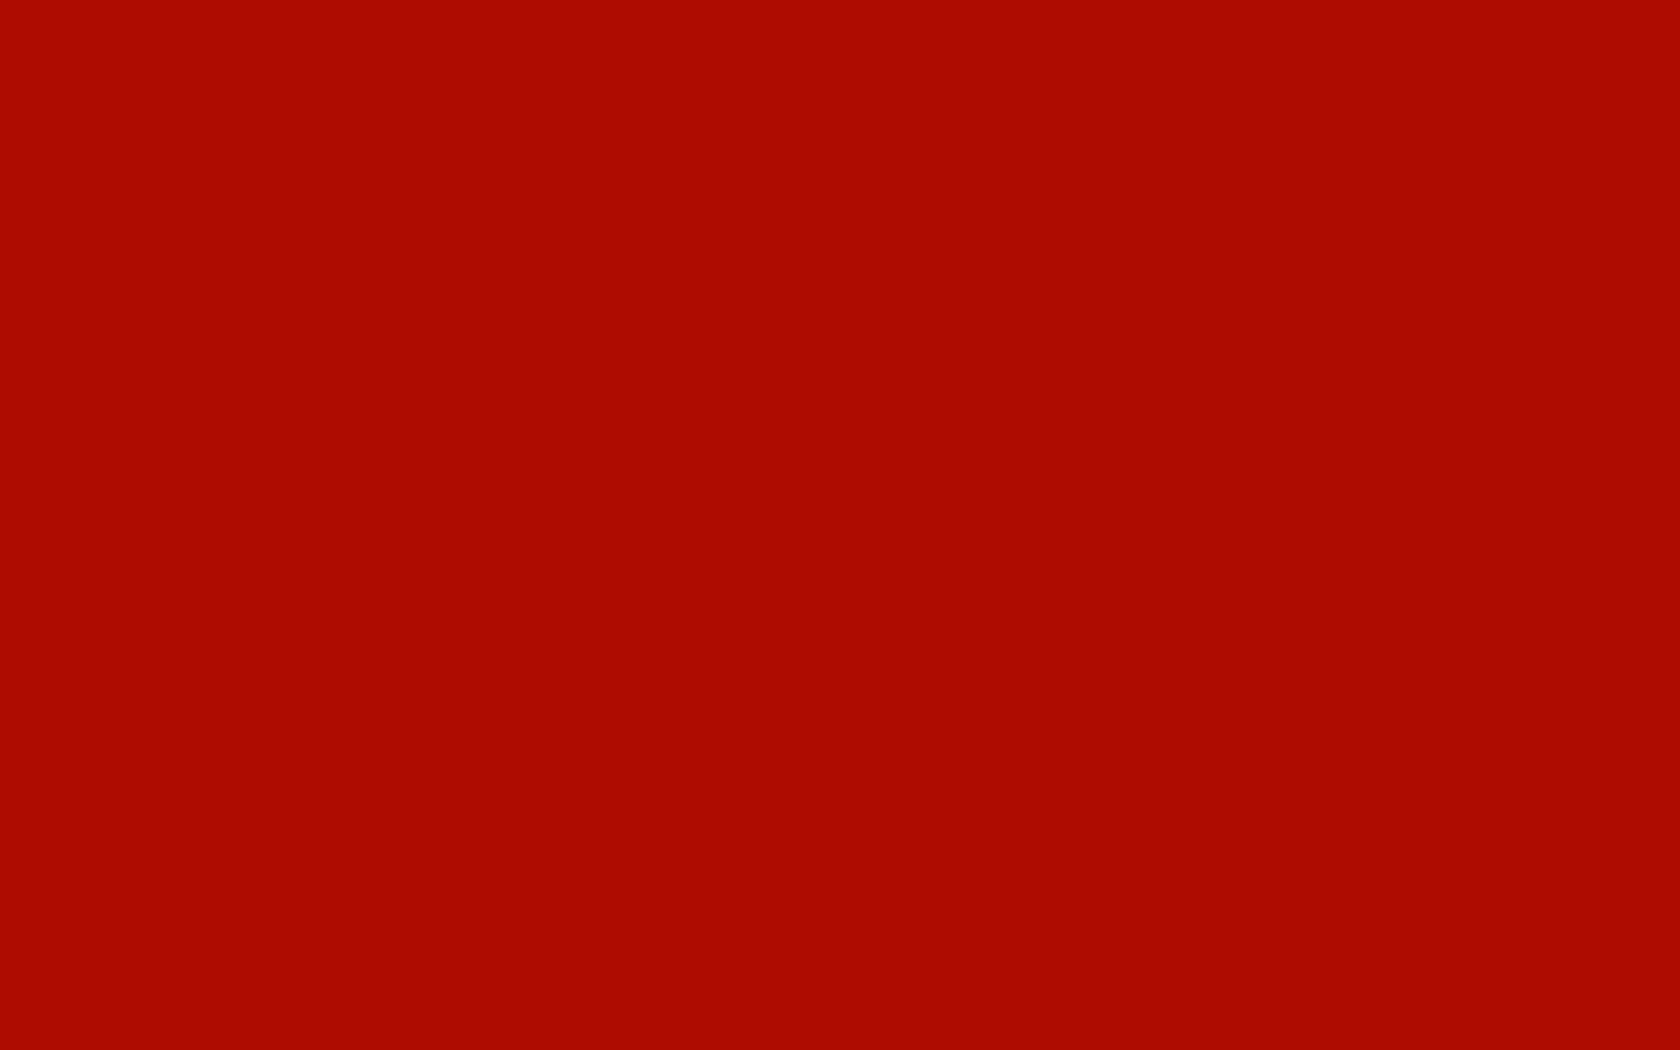 1680x1050 Mordant Red 19 Solid Color Background